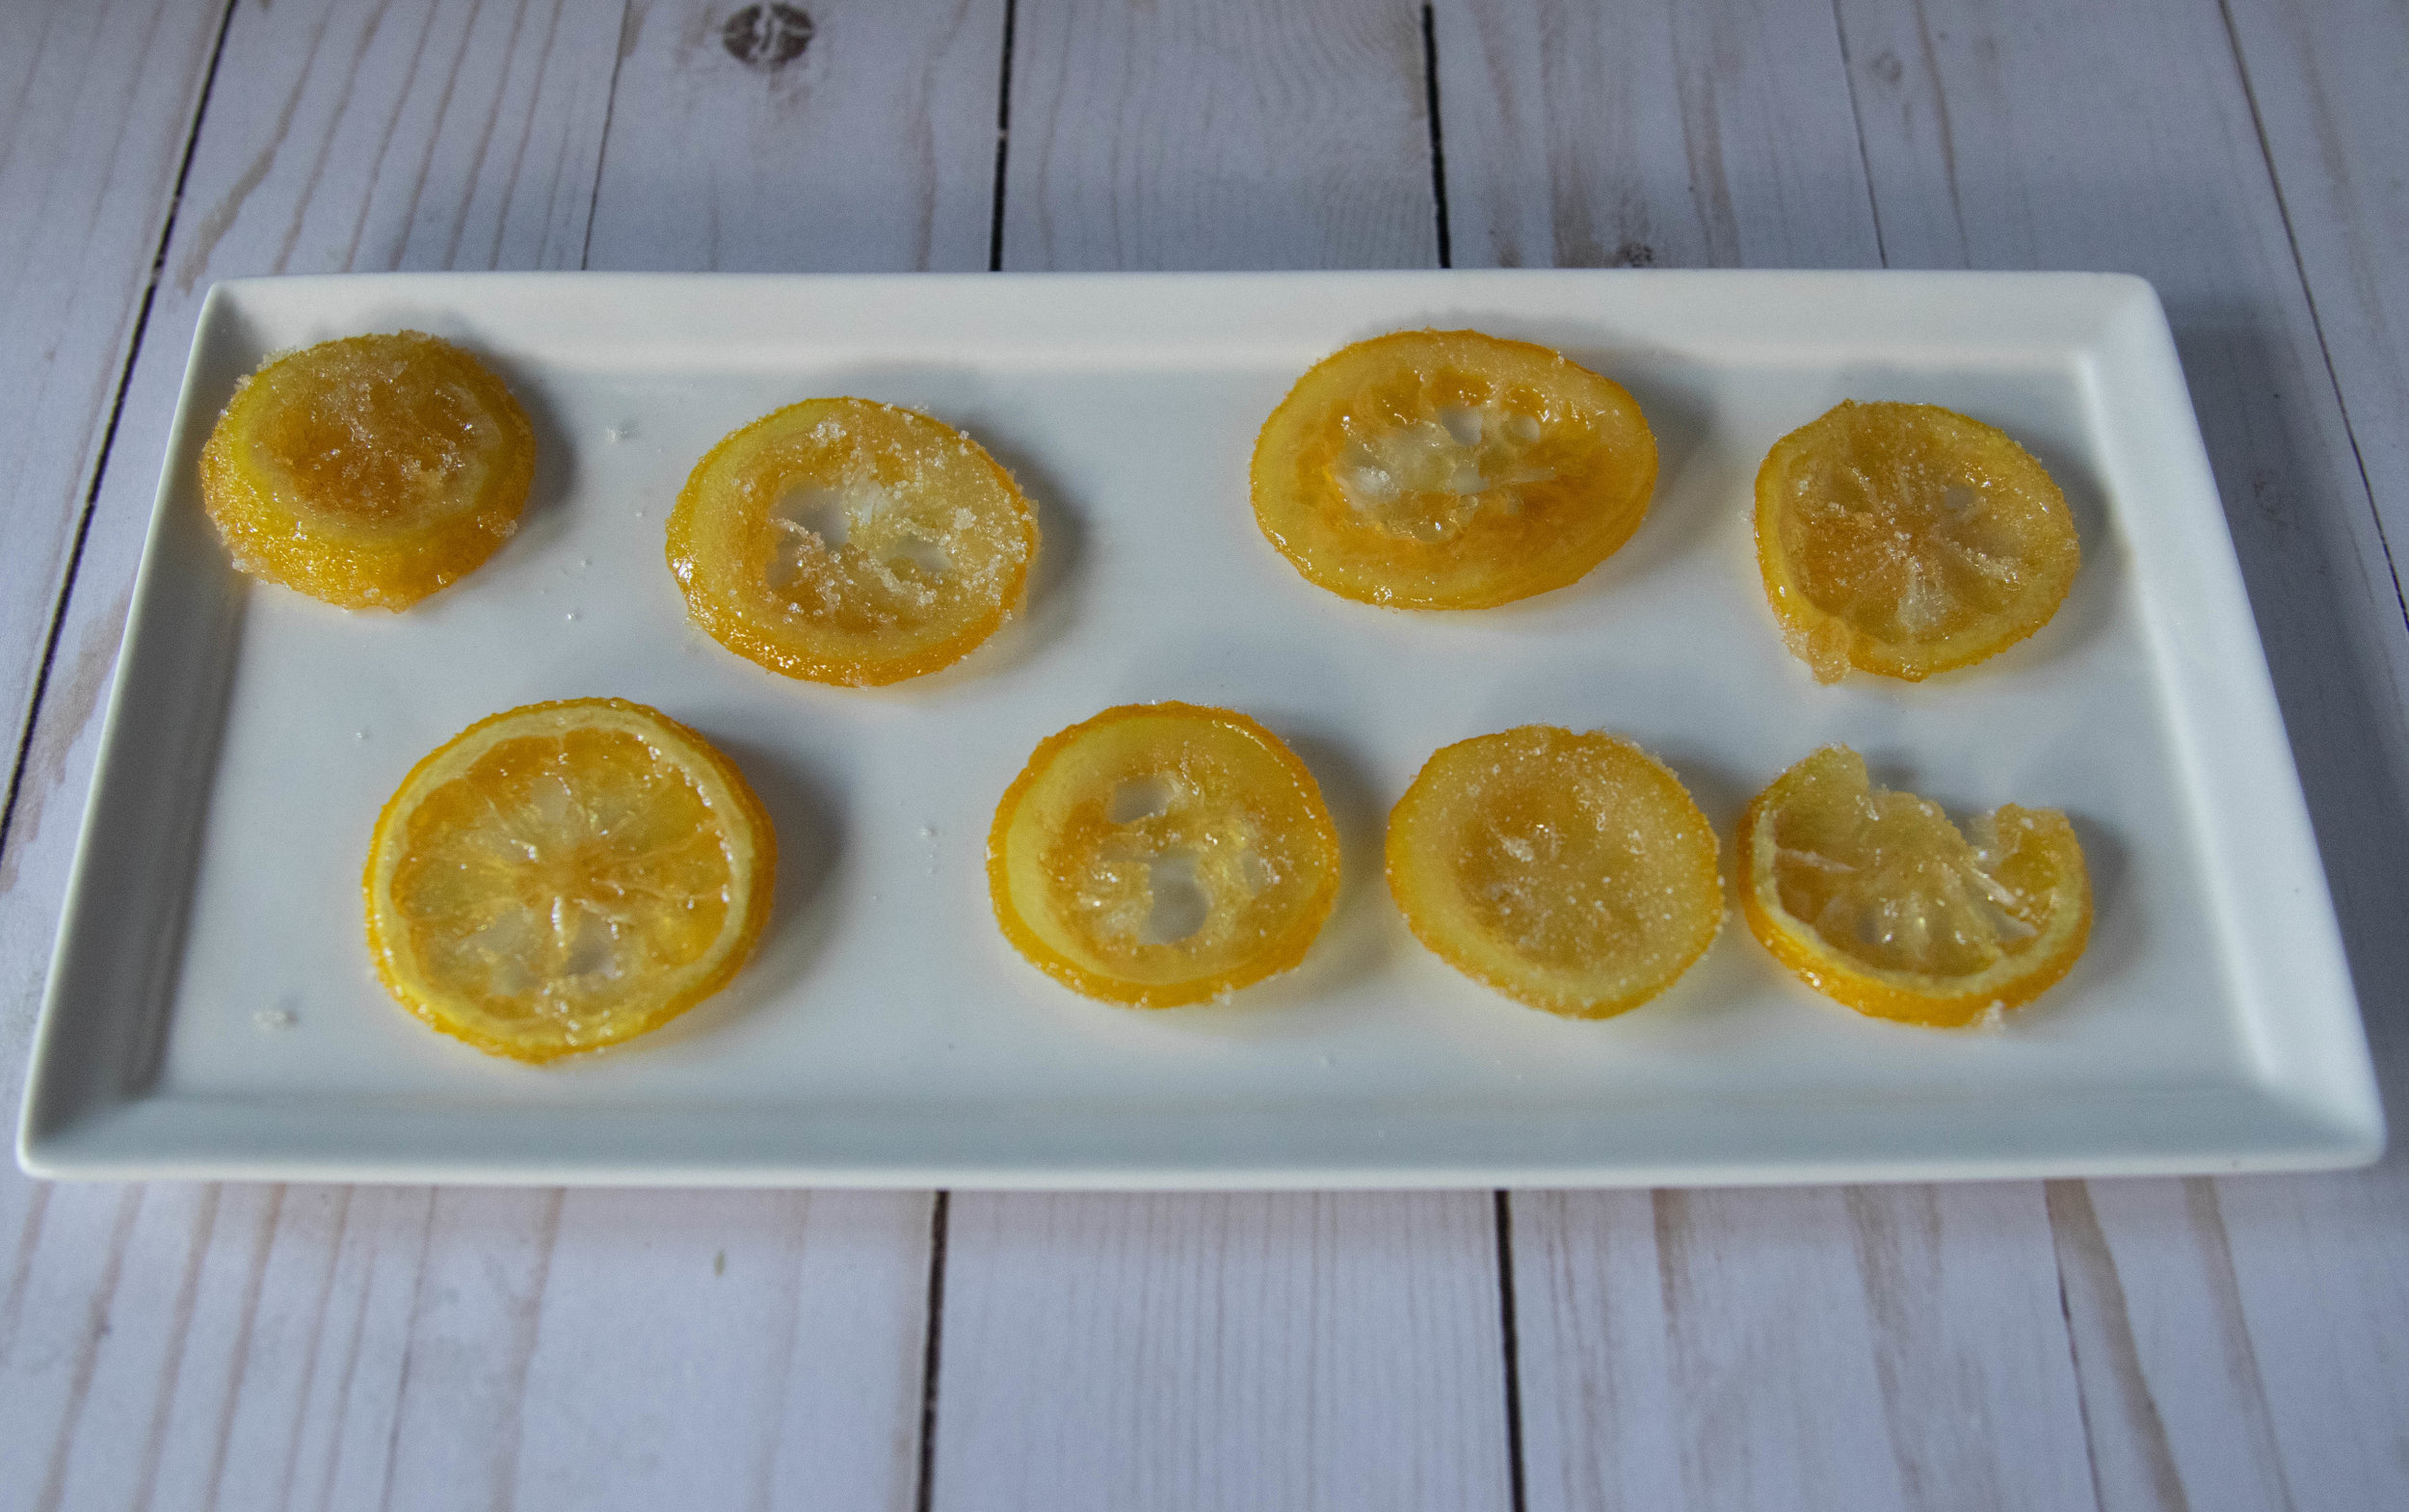 Plate of candied lemons with granulated sugar.